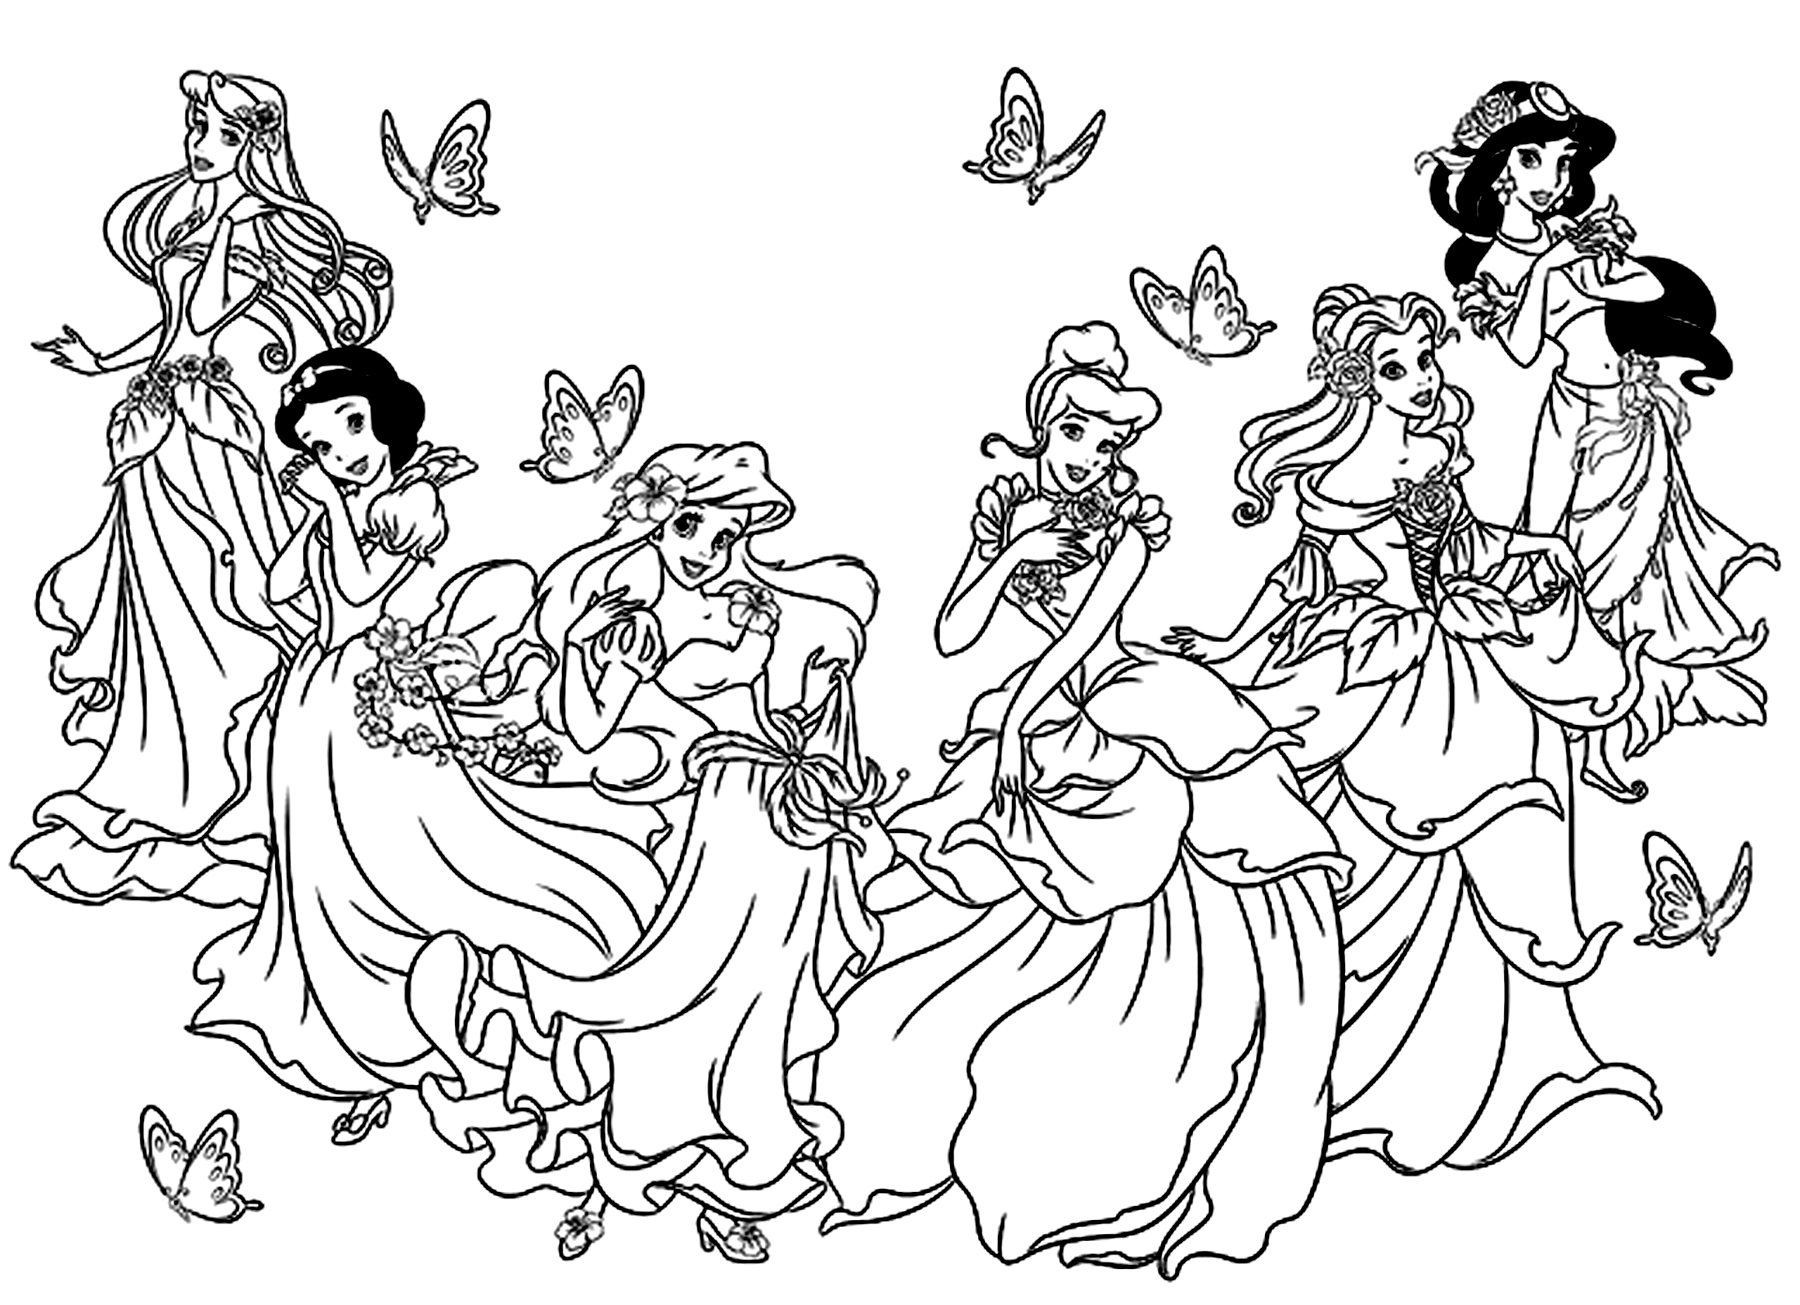 coloring pictures disney all princesses disney return to childhood adult coloring coloring pictures disney